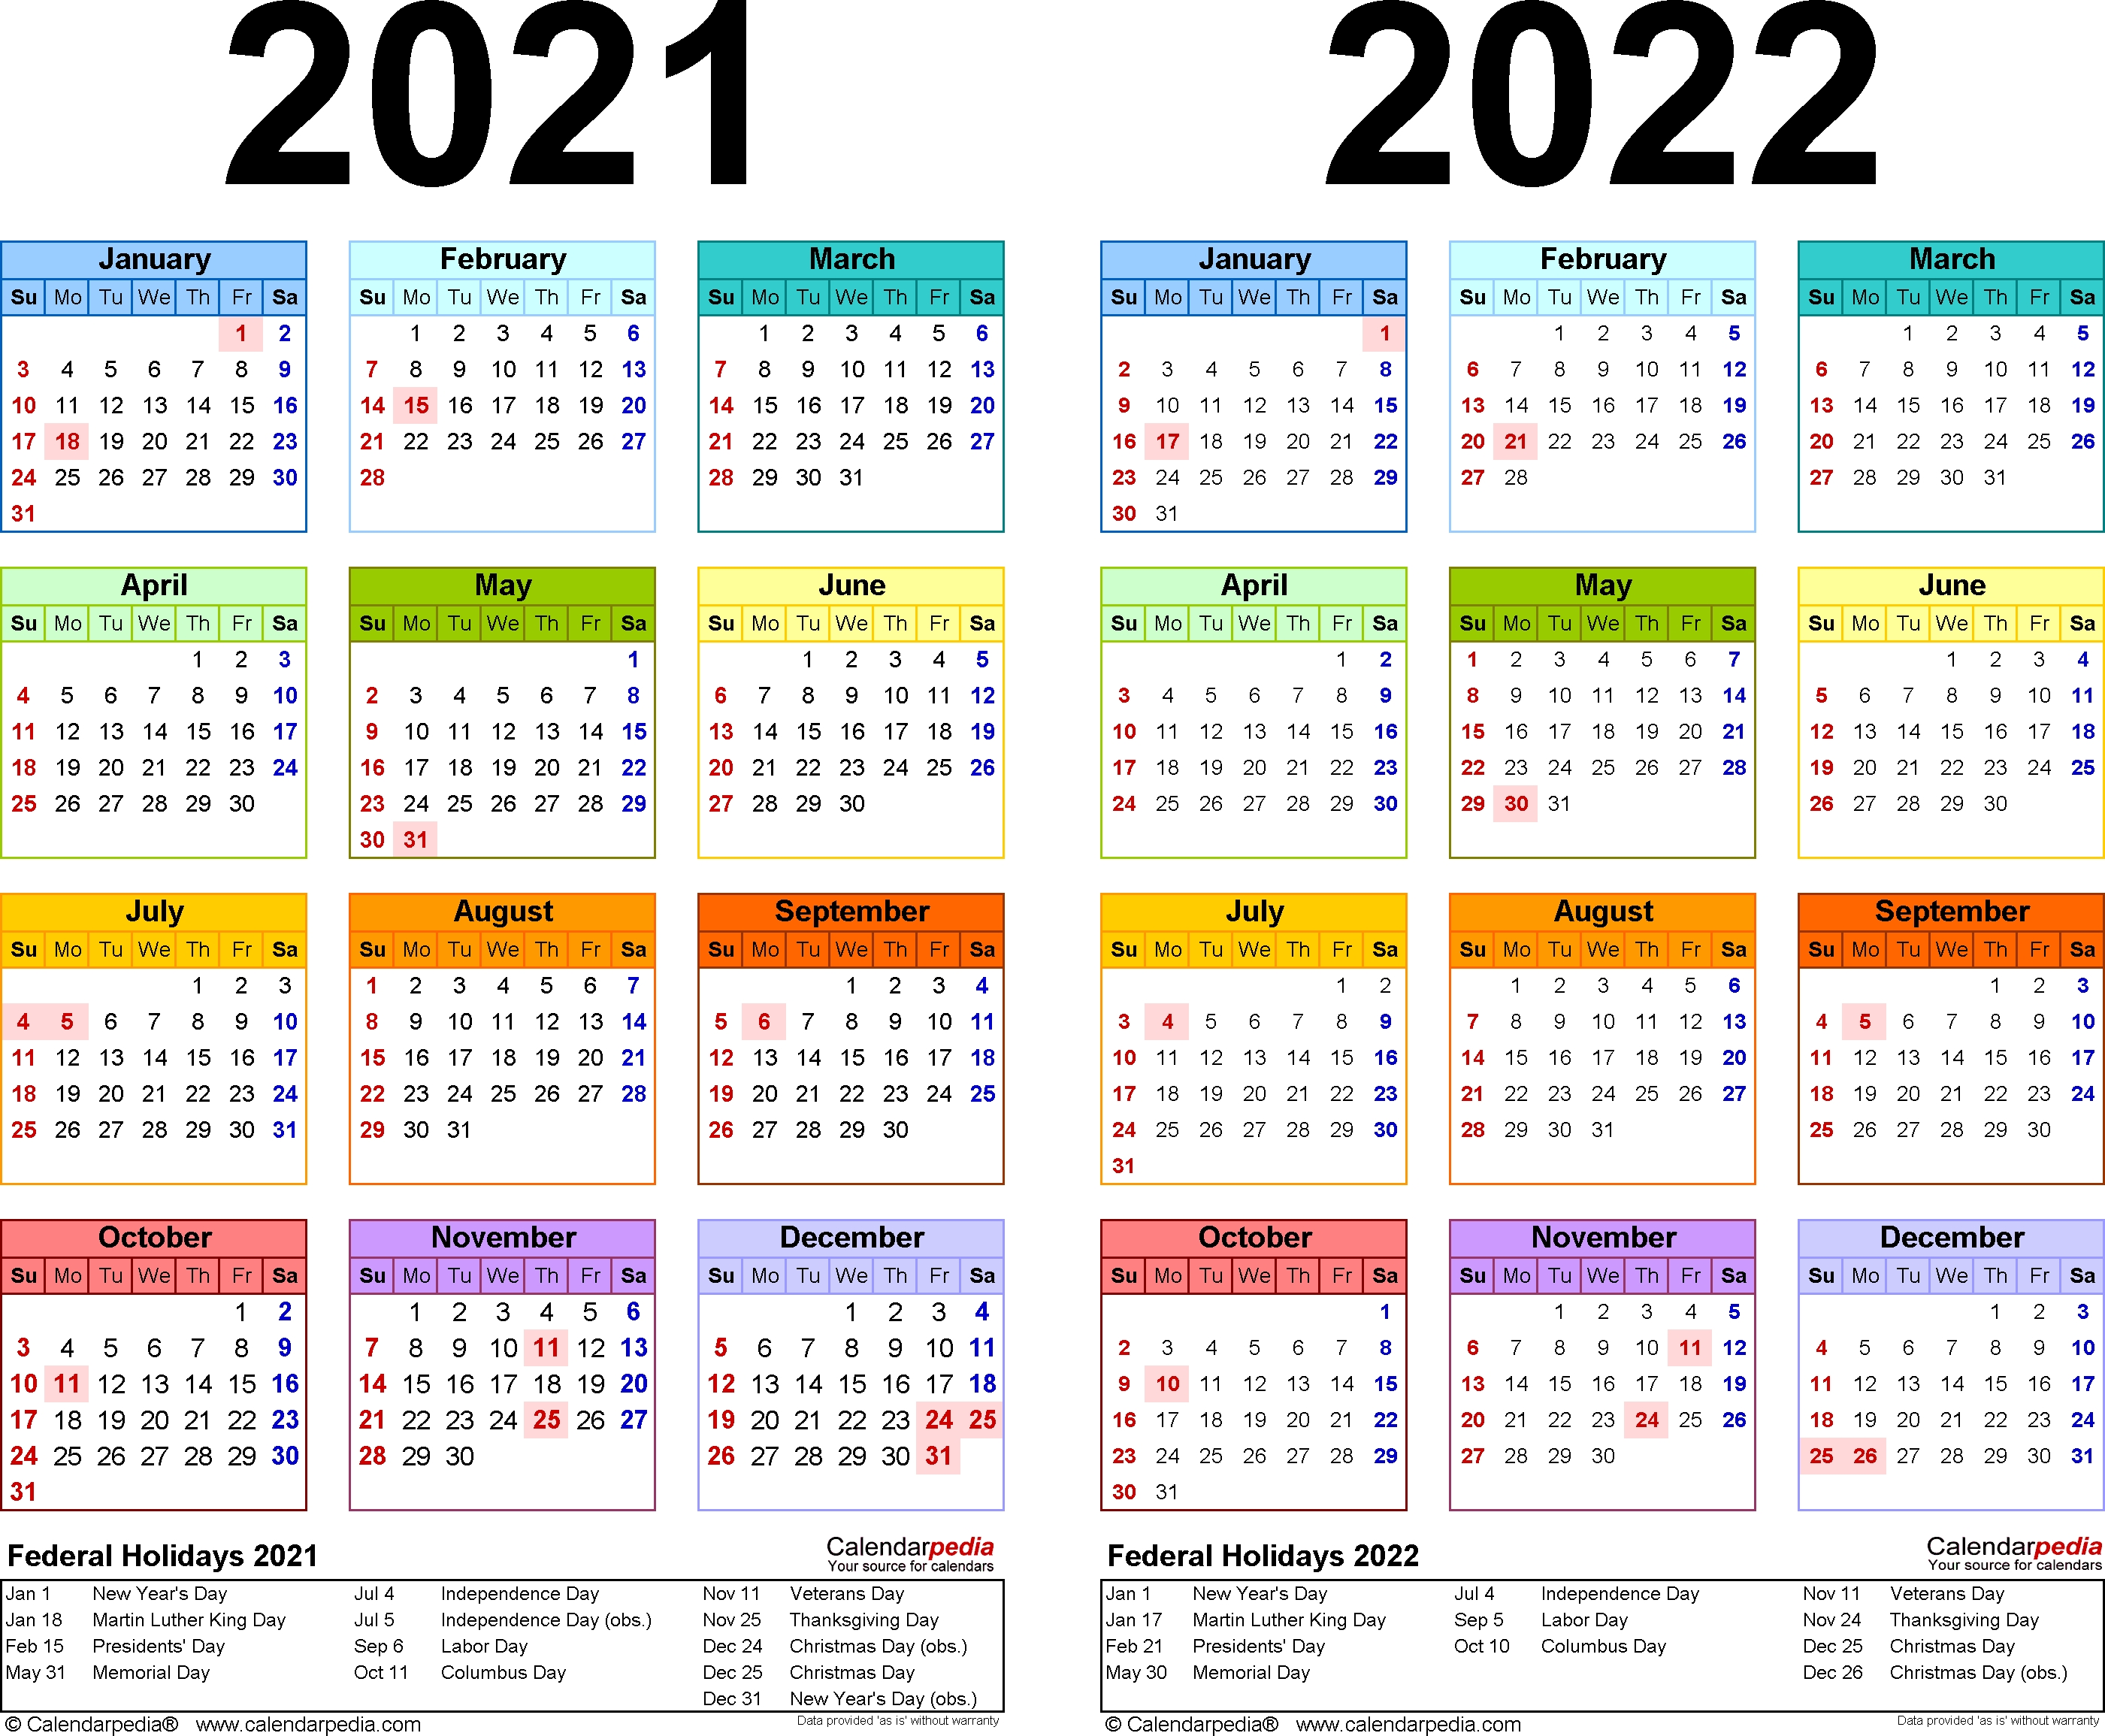 When Is Canadian Thanksgiving 2021 2022 | Qualads